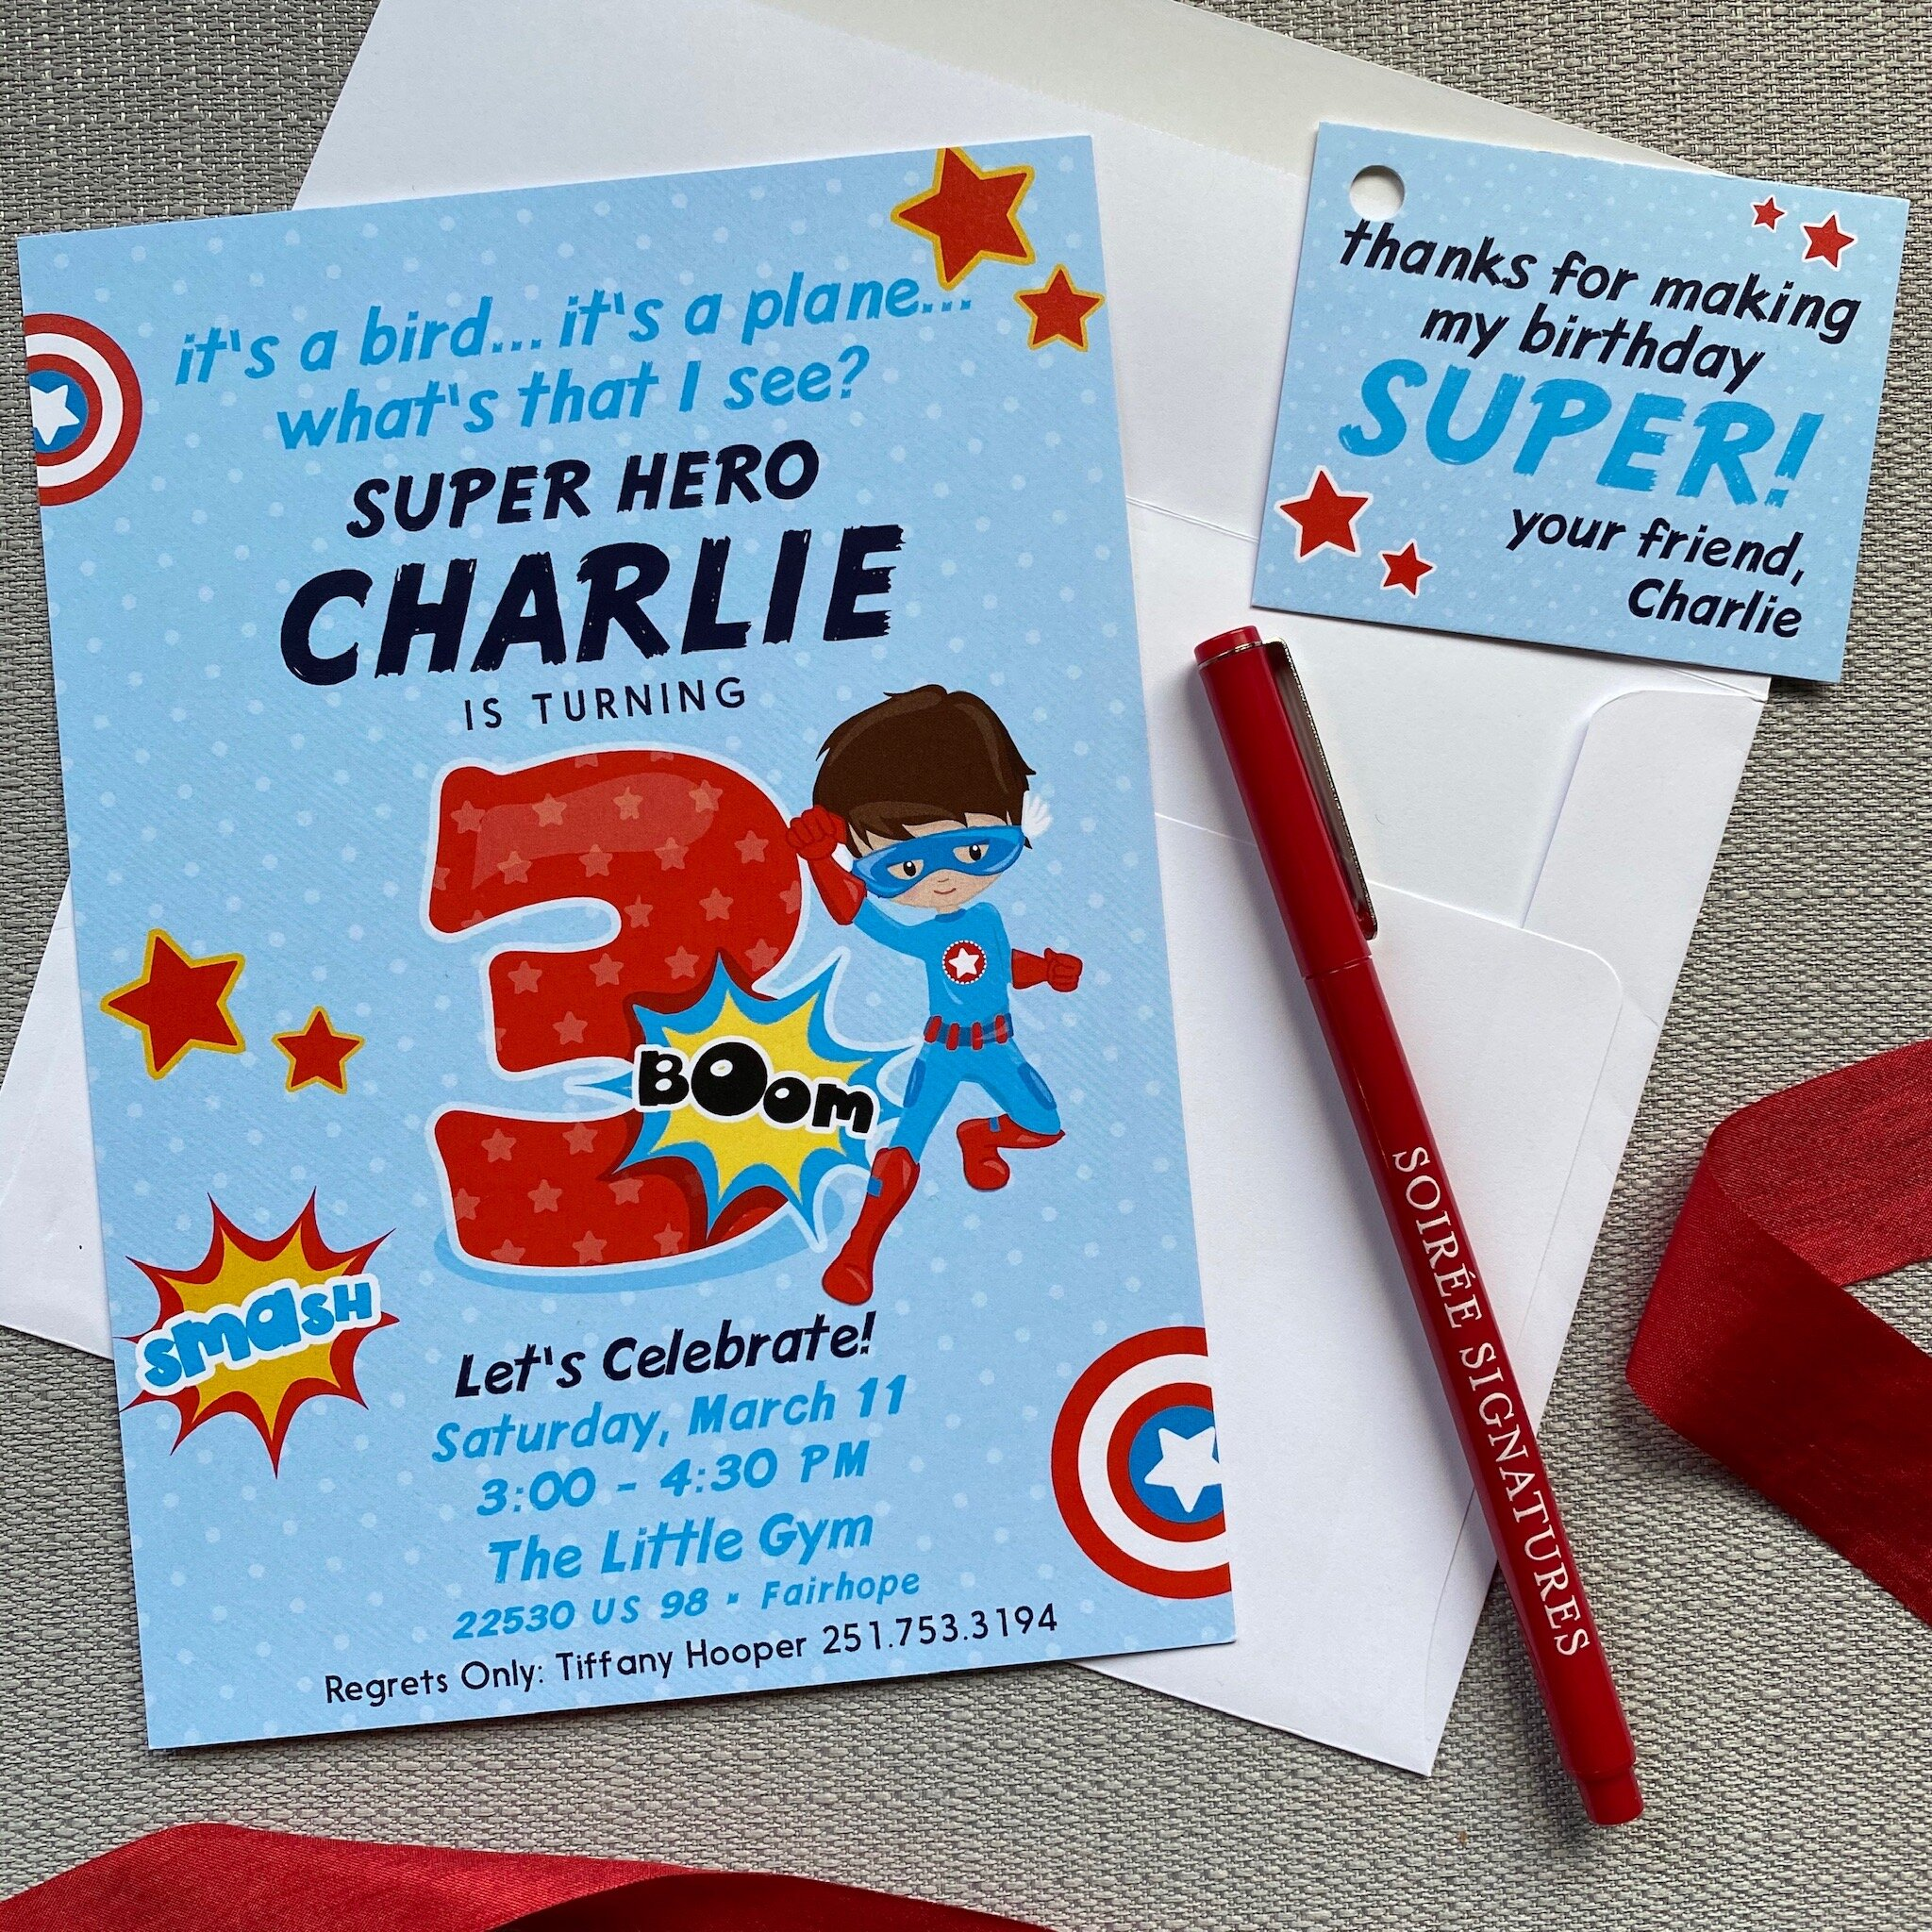 super hero birthday invitation aj bday 10 soiree signatures